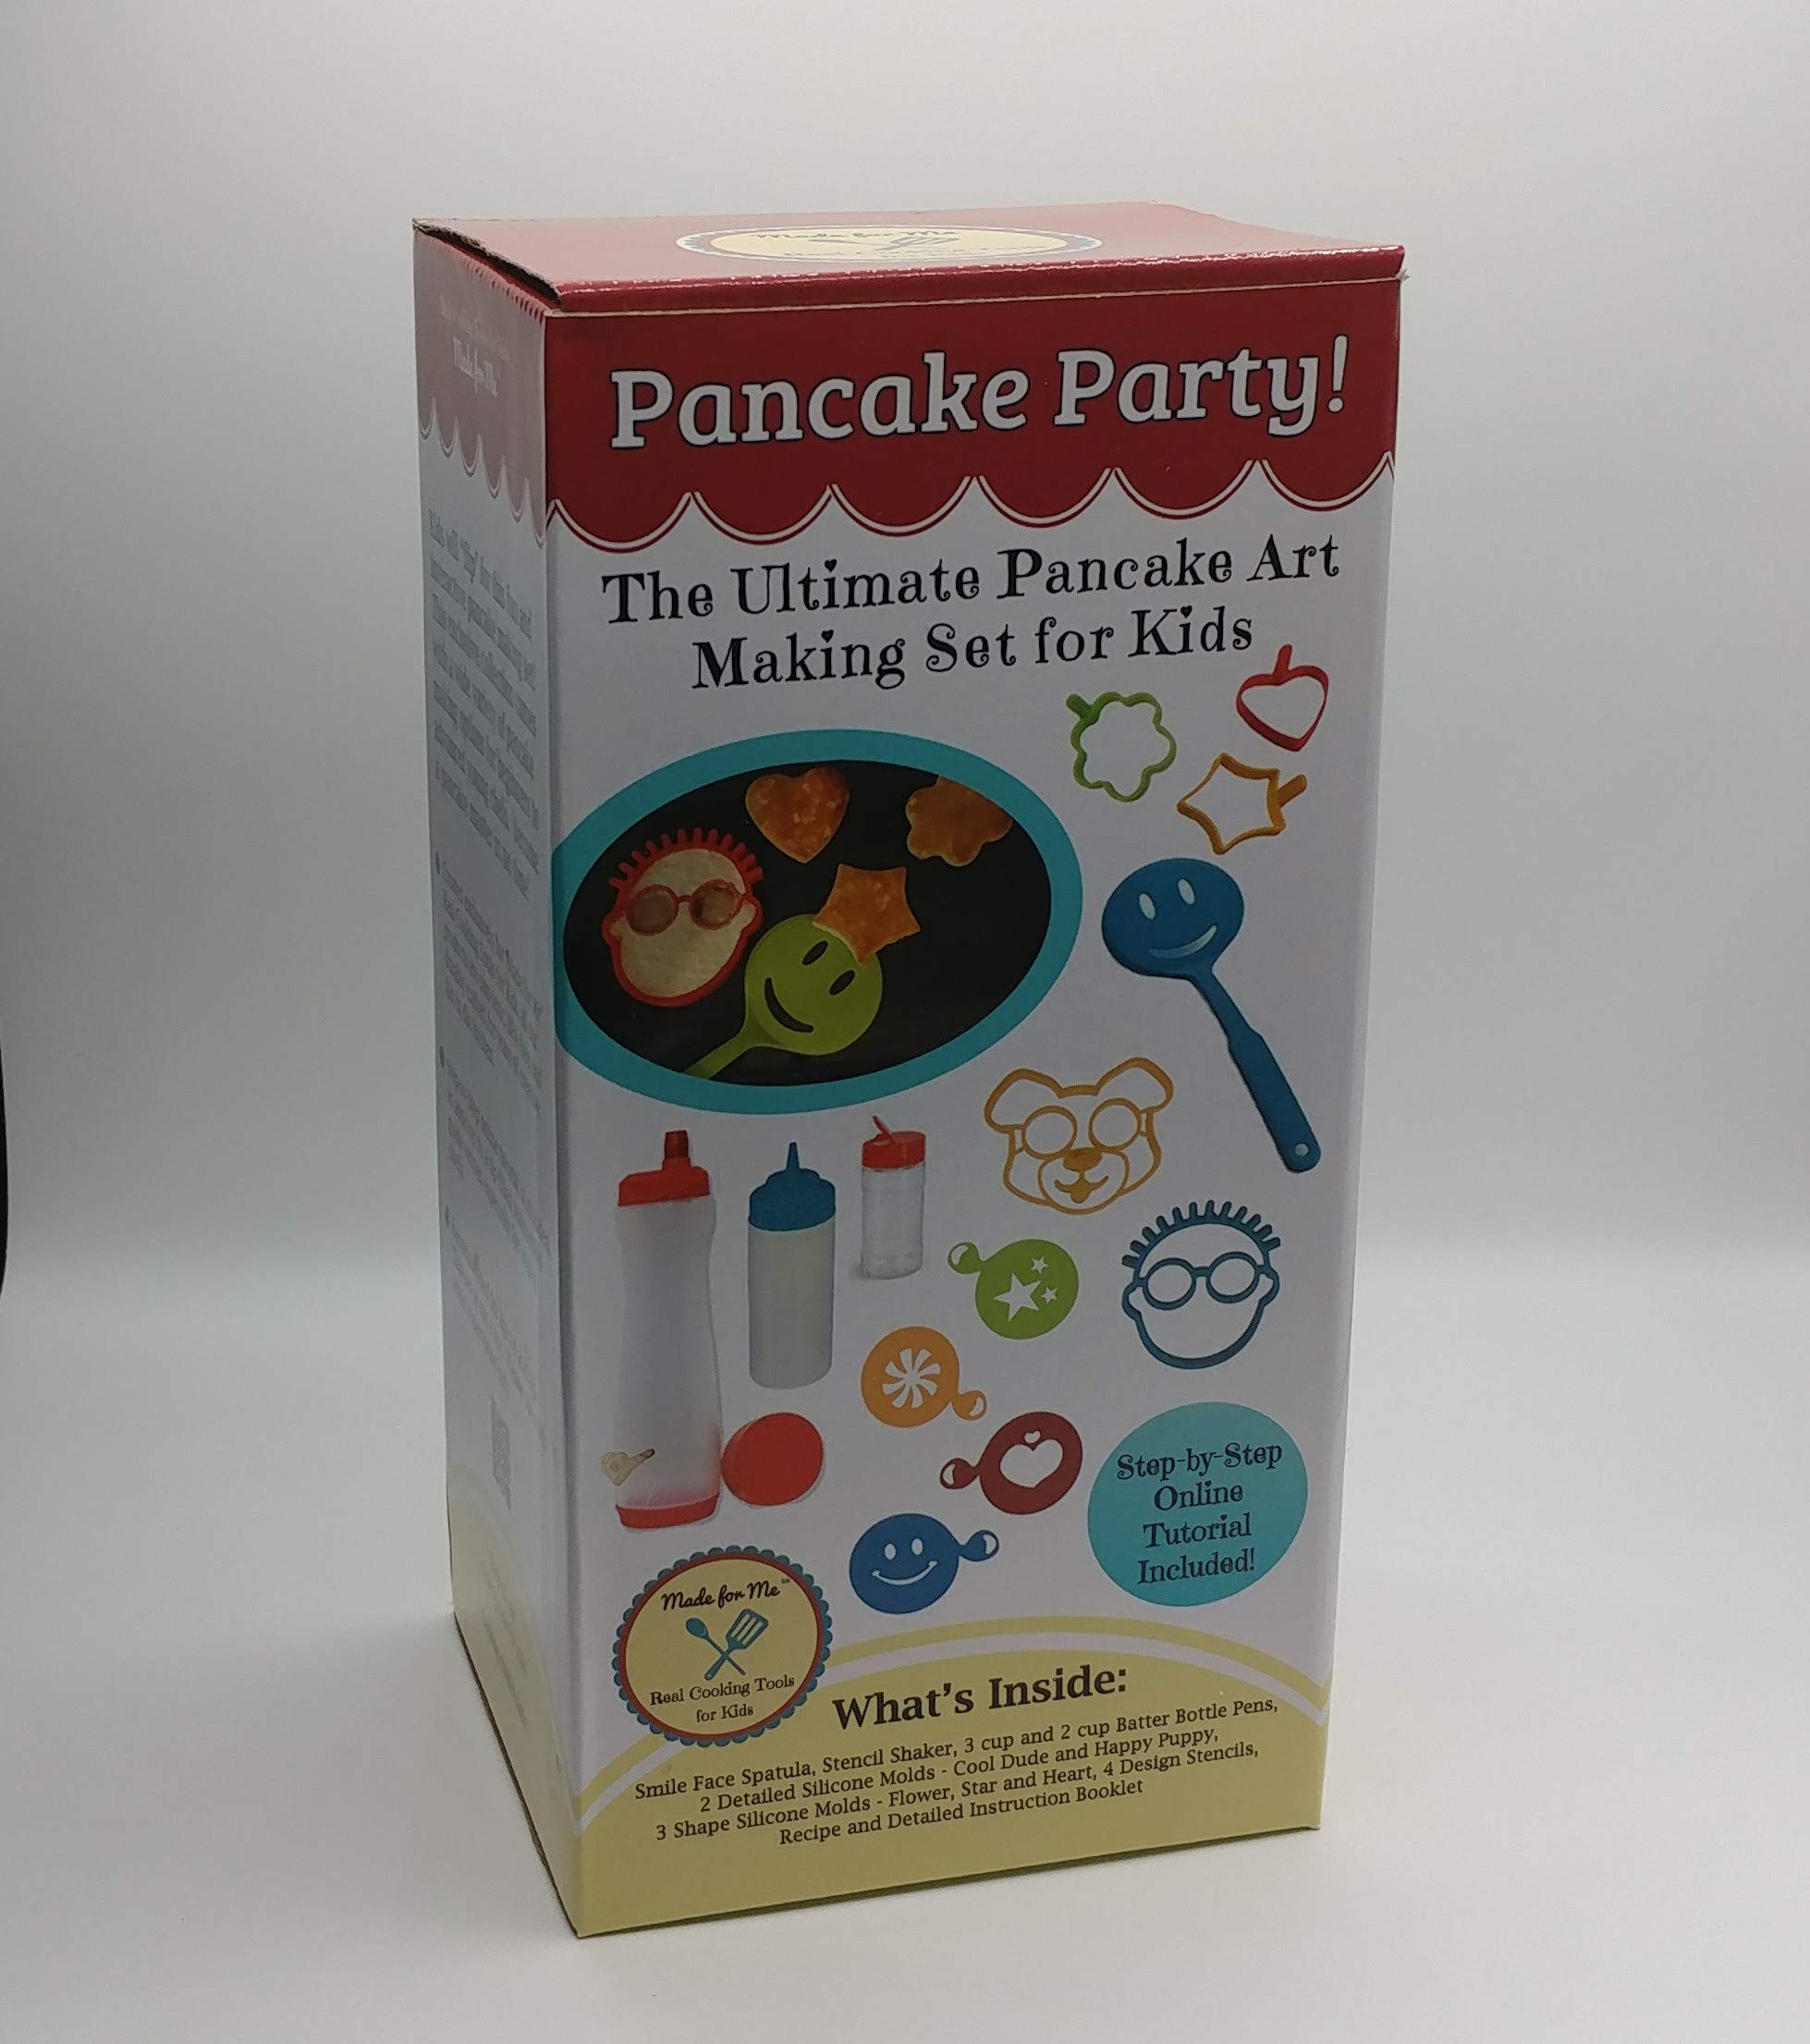 Pancake Party! The Ultimate Pancake Art Making Set for Kids - SUMMER SALE! / REG $35.95 Excellent culinary educational gift for children, young bakers, chefs! baking, cooking kit for boys and girls! by Made for Me (Image #2)